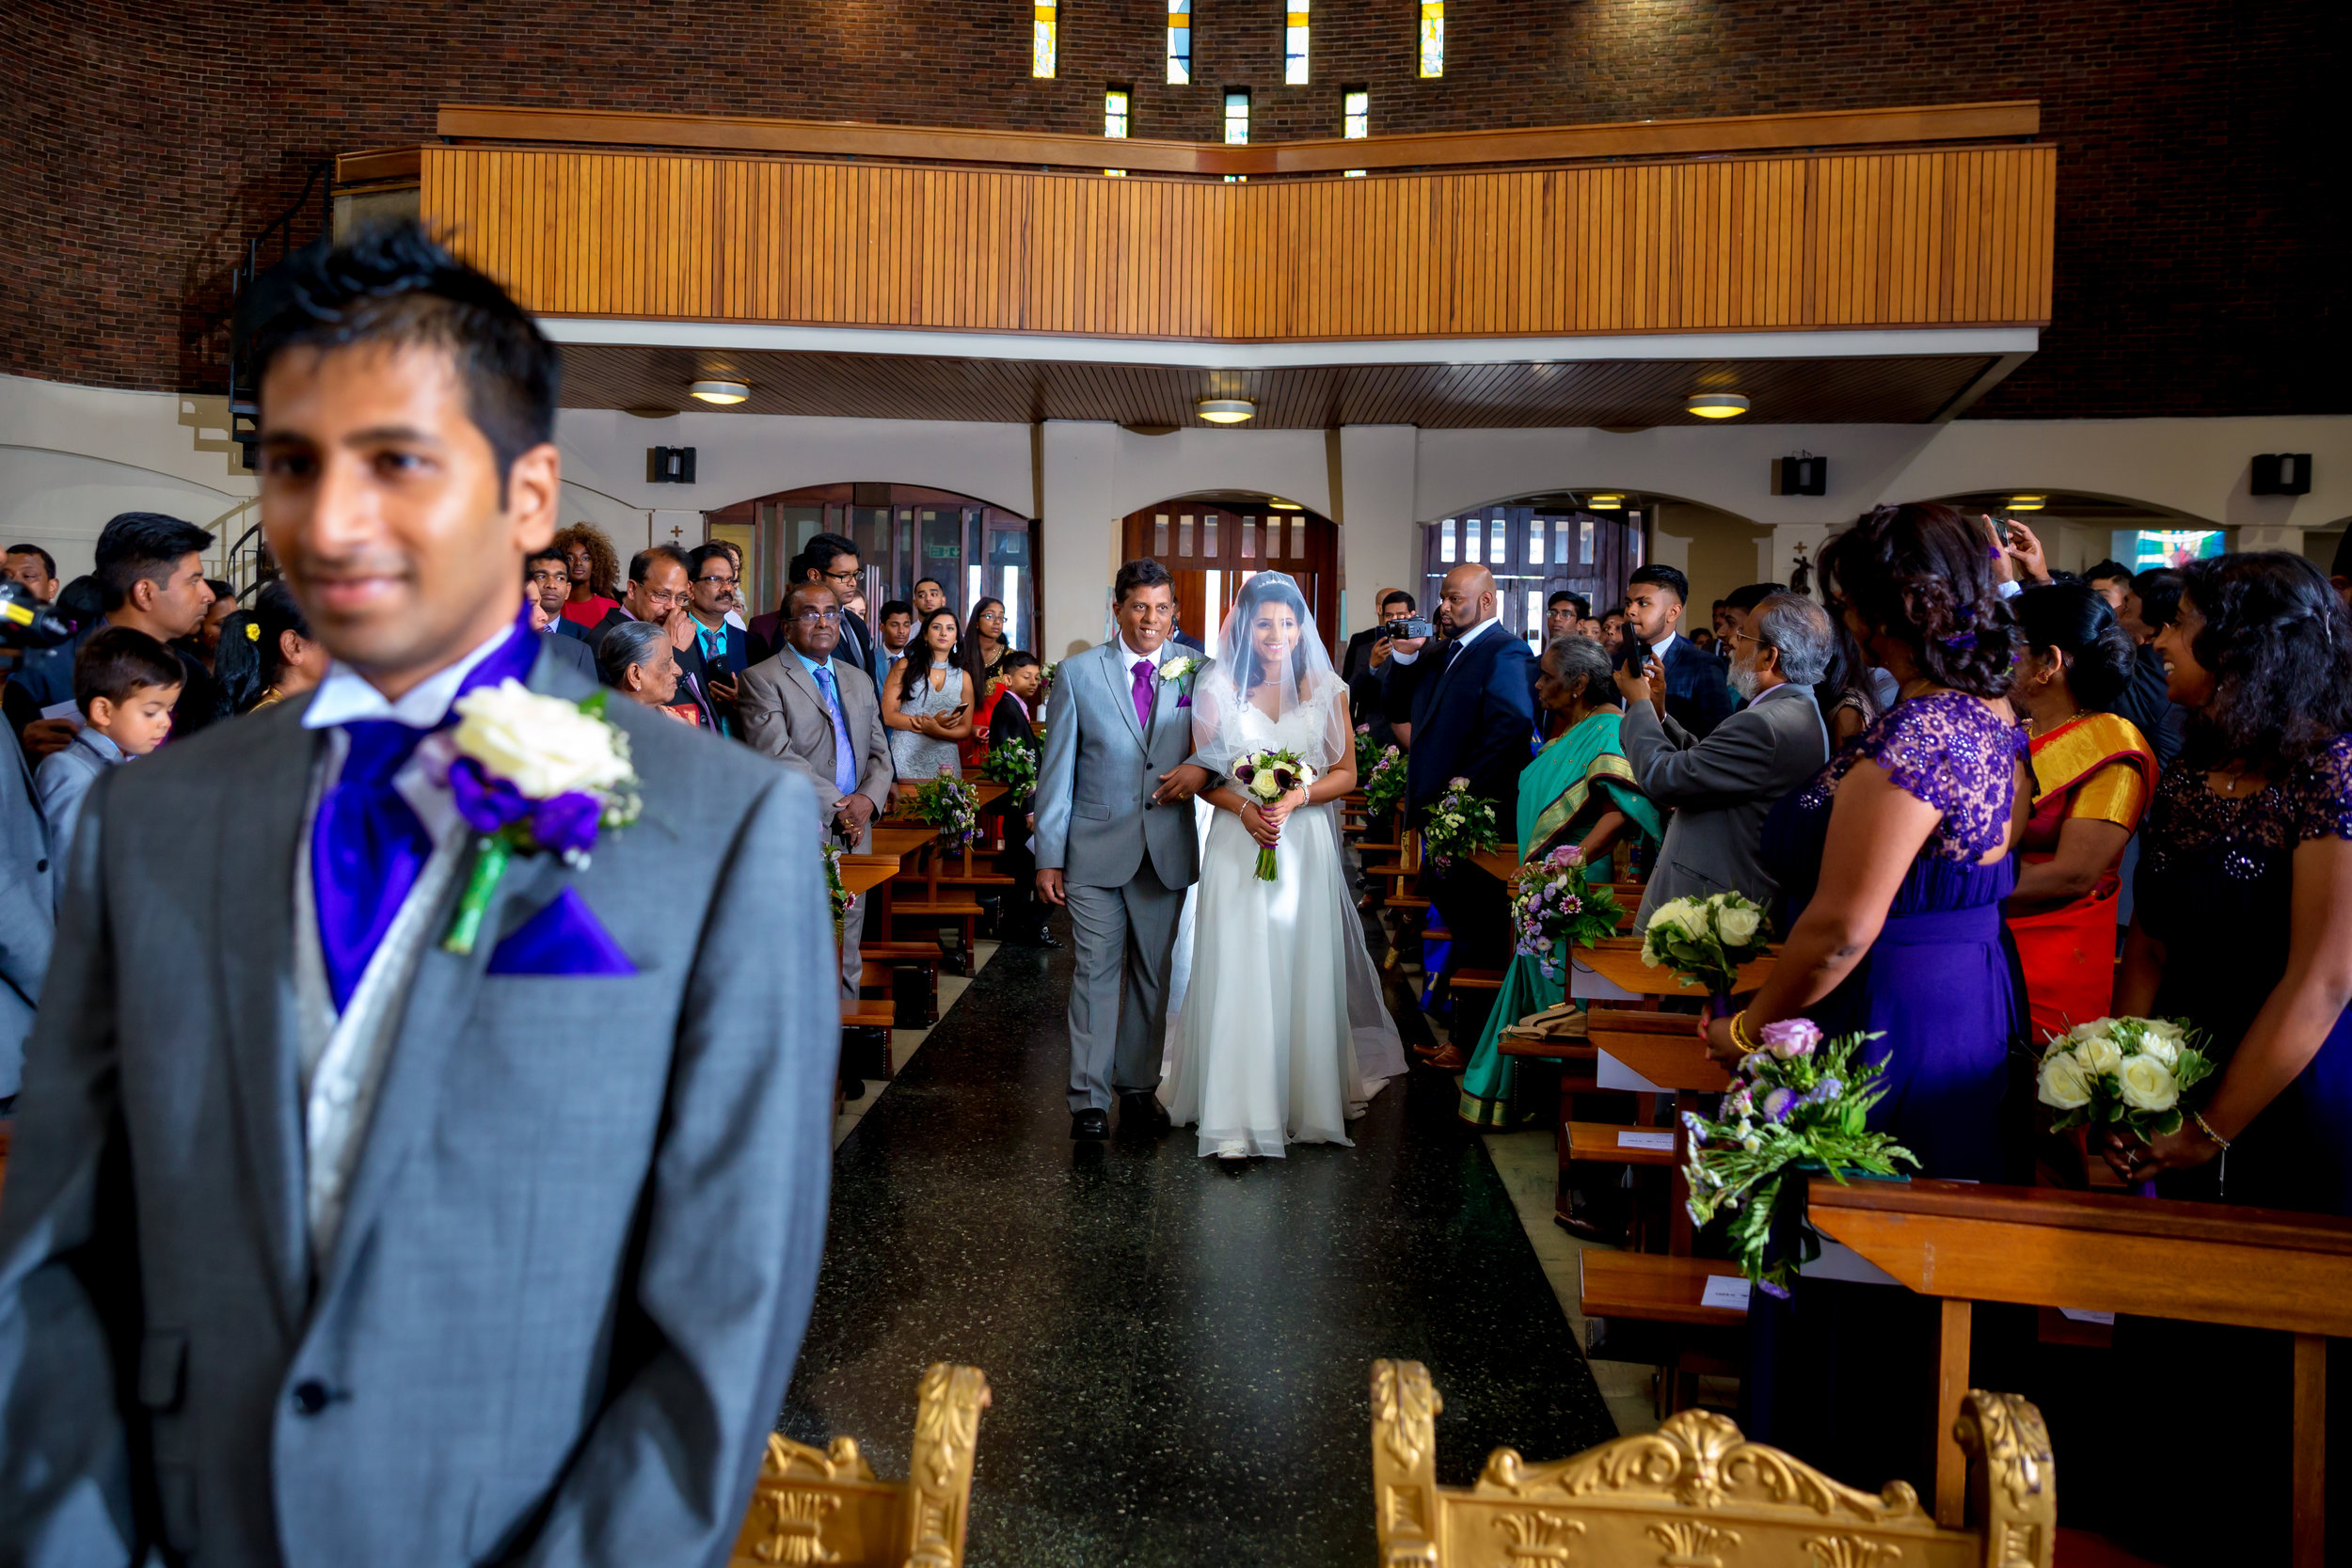 Churchwedding-63.jpg